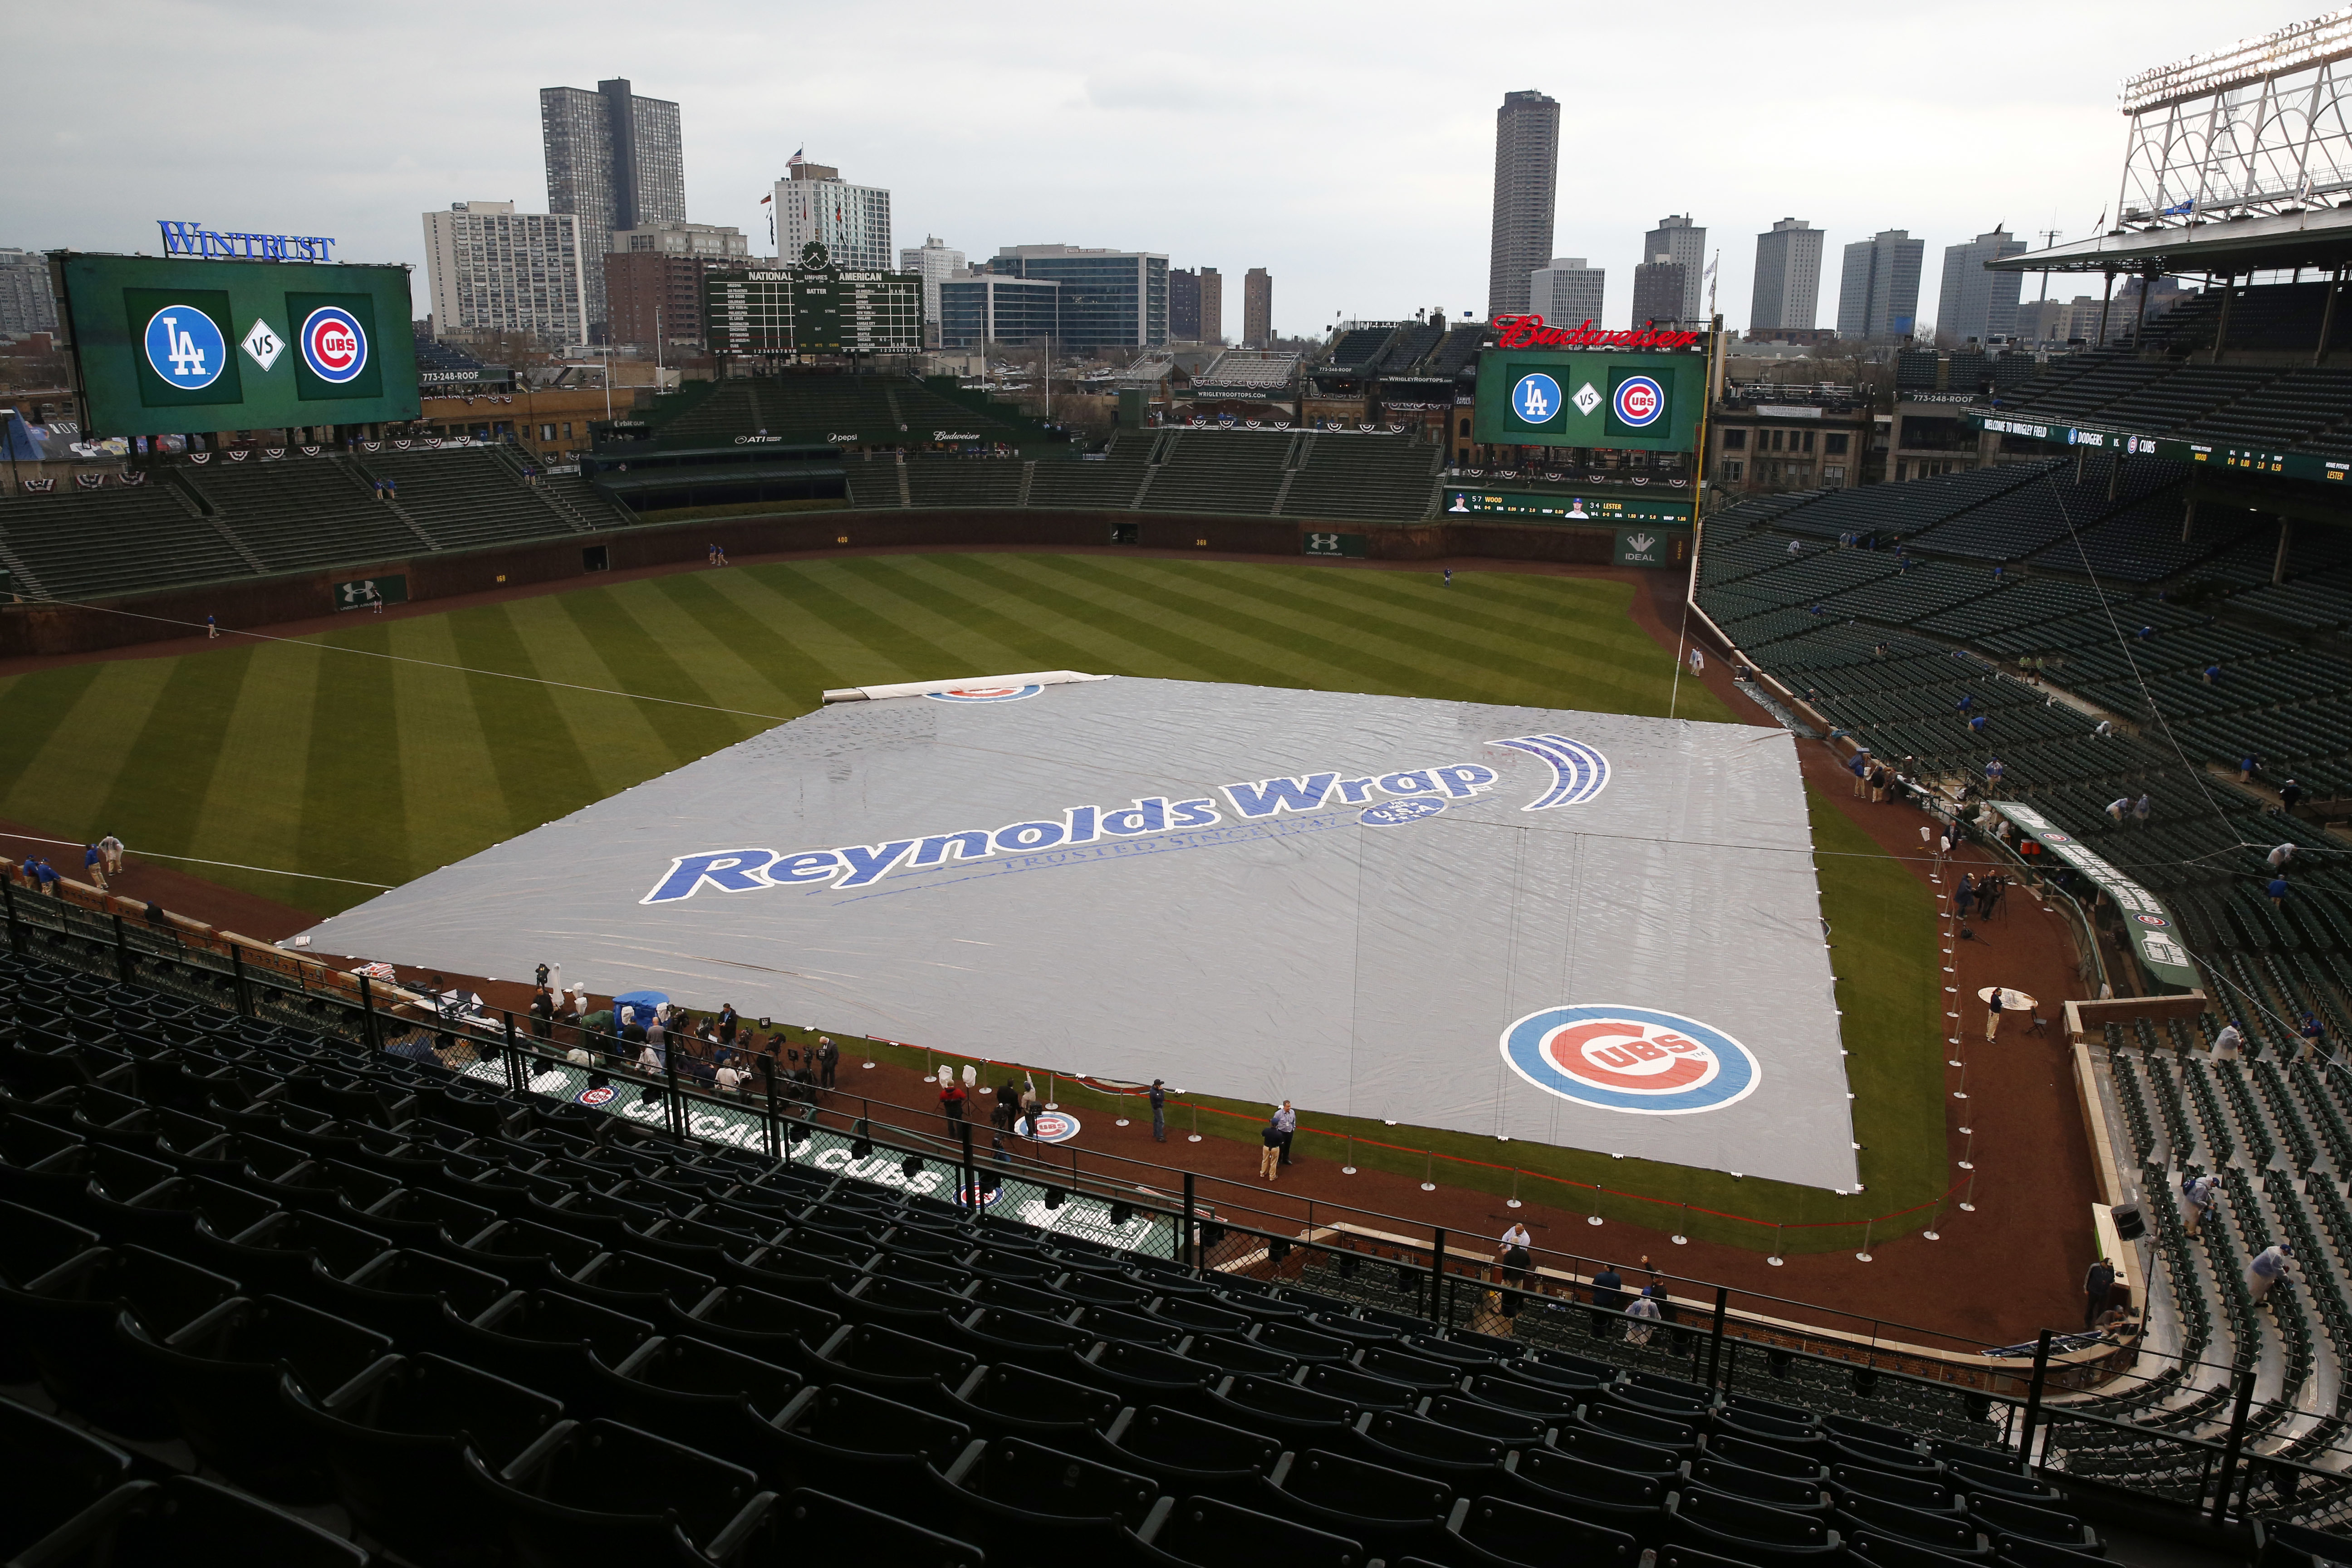 A tarp covers the field at Wrigley amid early afternoon rainstorms on home opening day, Monday, April 10, 2017. The bullpens, formerly located down the first-base and third-base lines, were moved beneath the bleachers during the offseason.  (AP Photo/Nam Y. Huh)